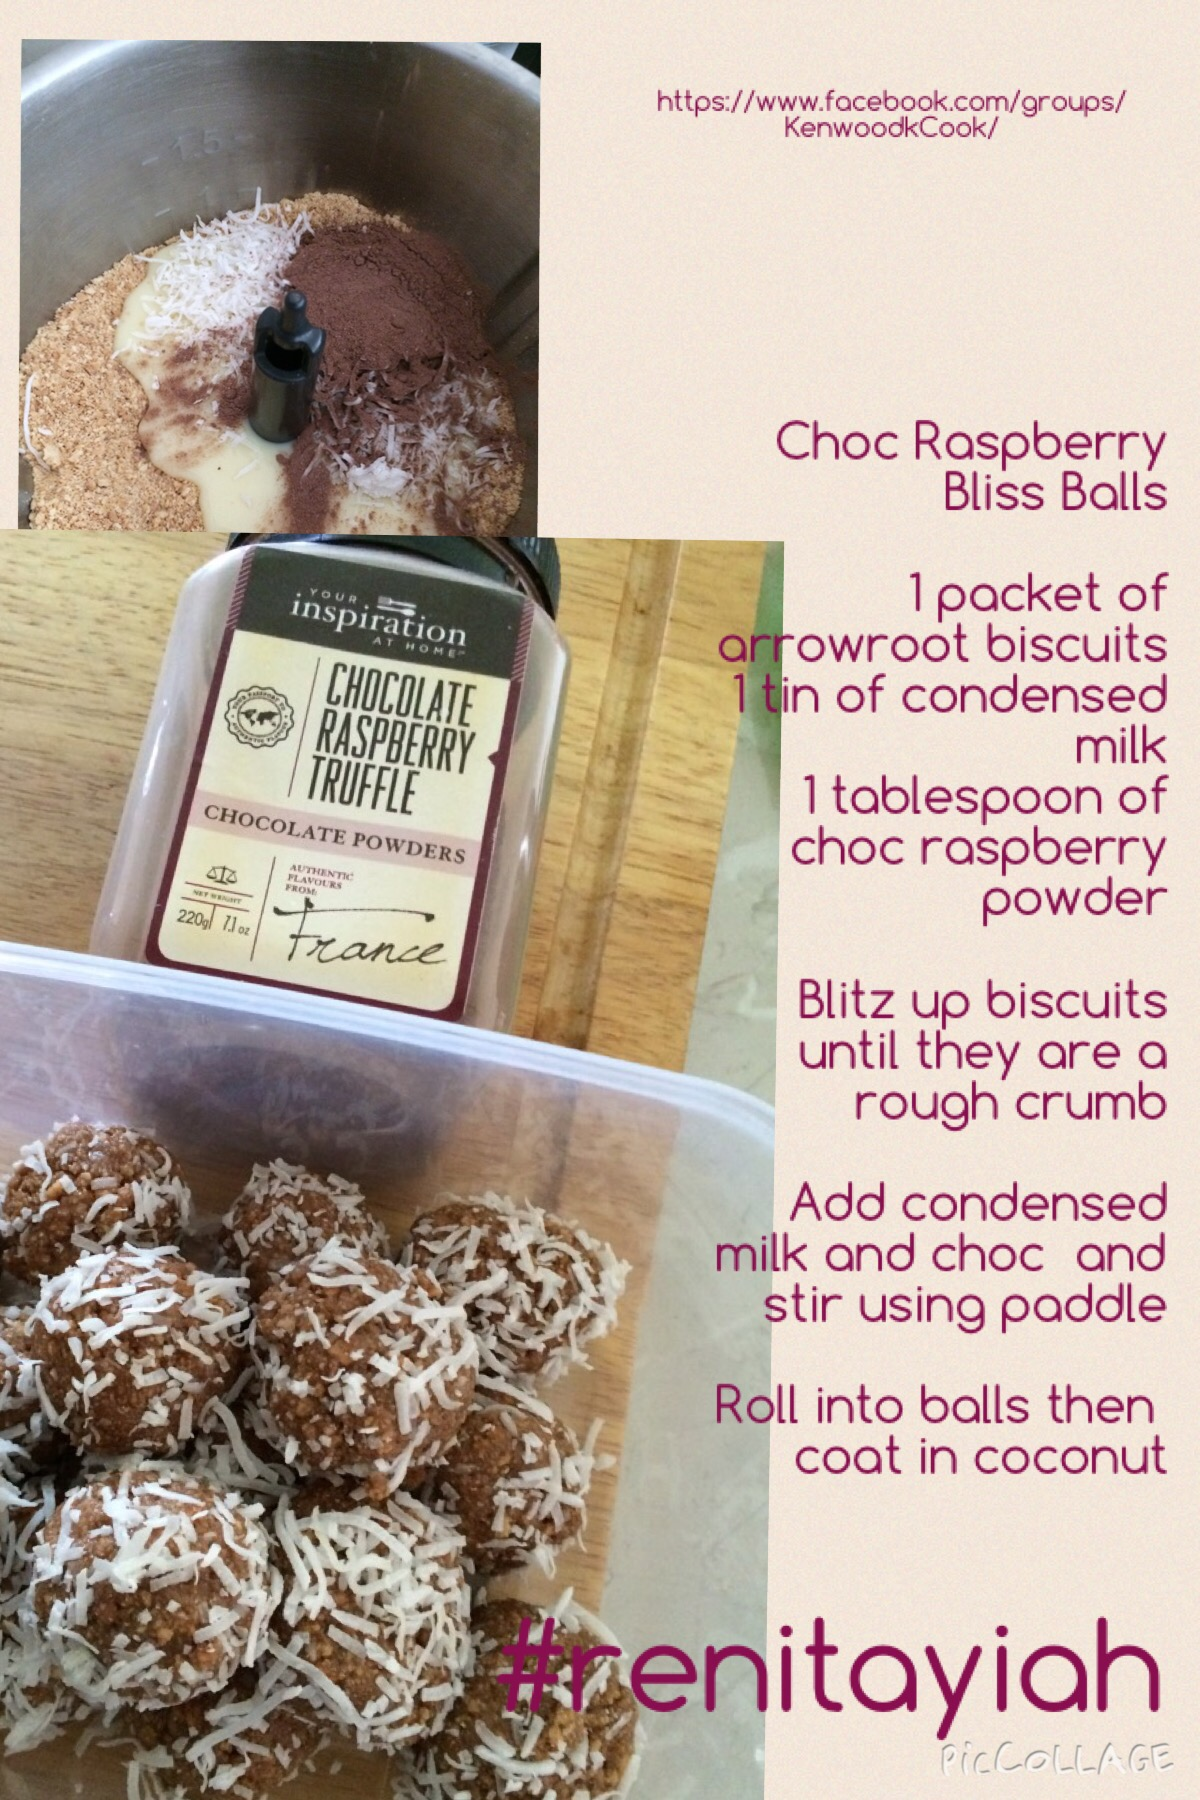 Choc Raspberry Bliss Balls